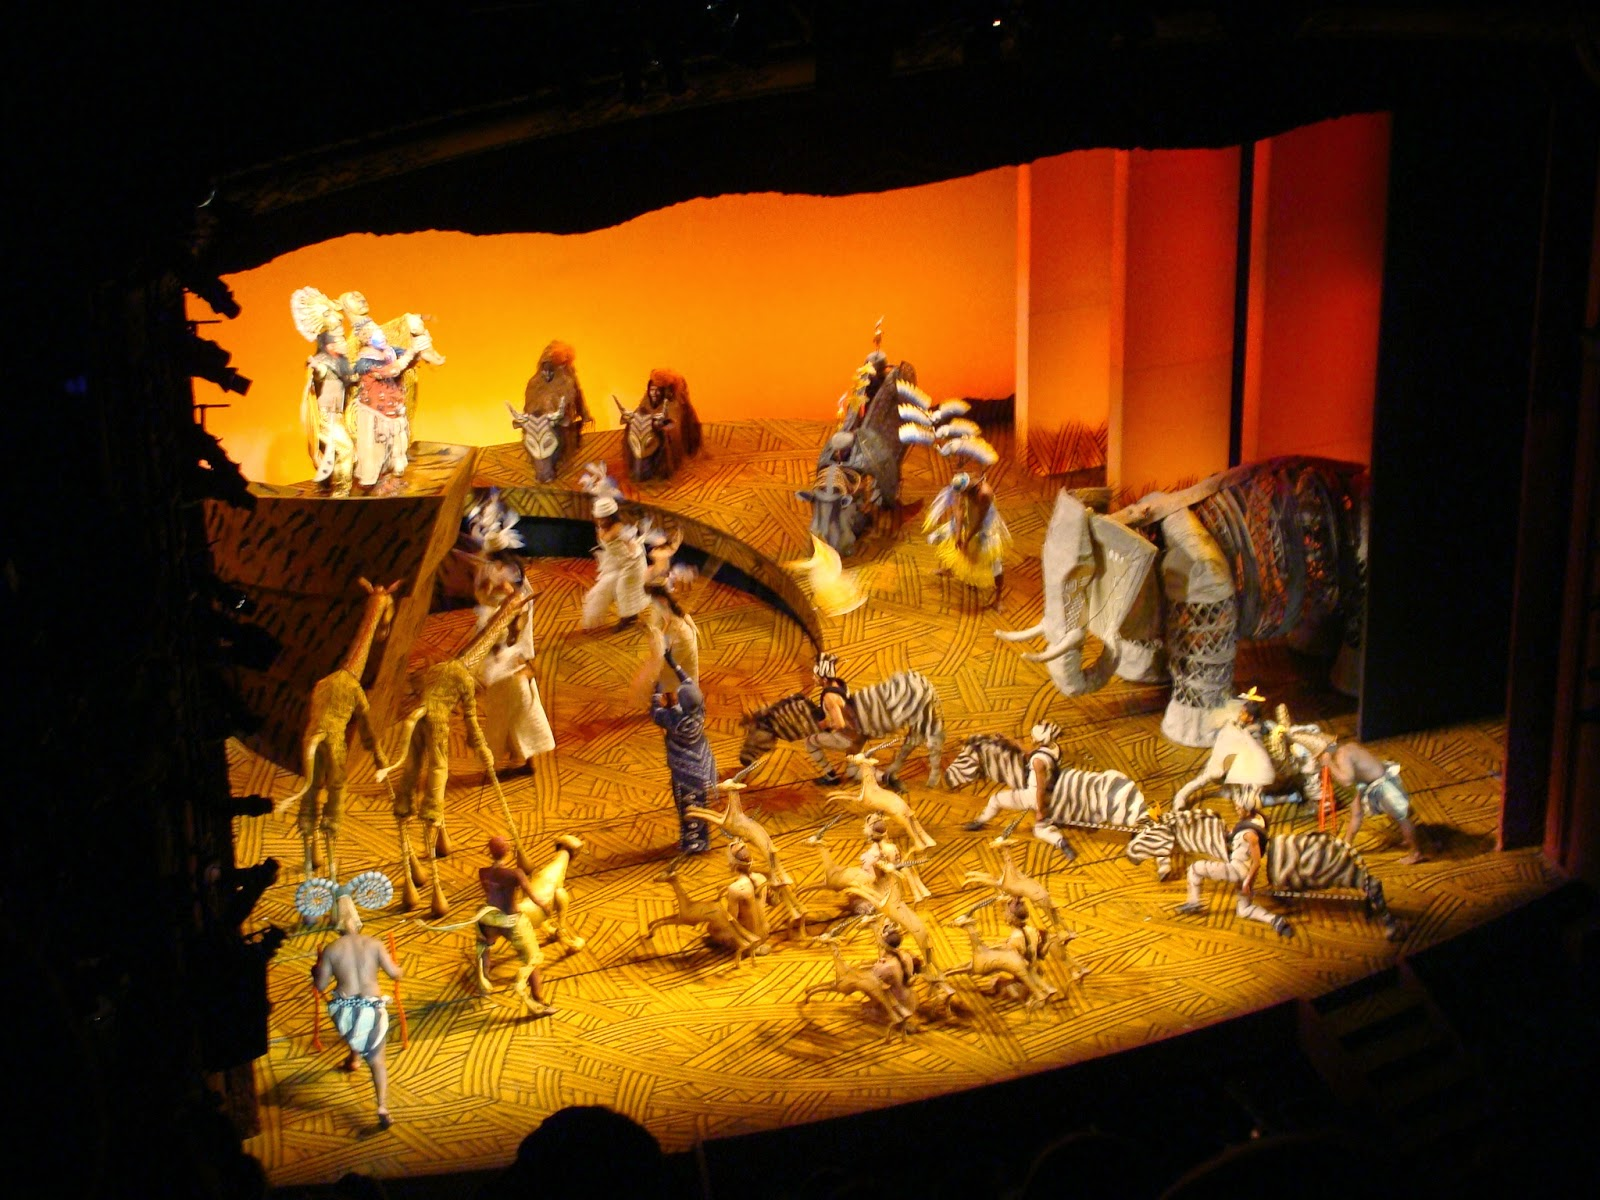 lyceum theatre london  the rocking lion king show playing